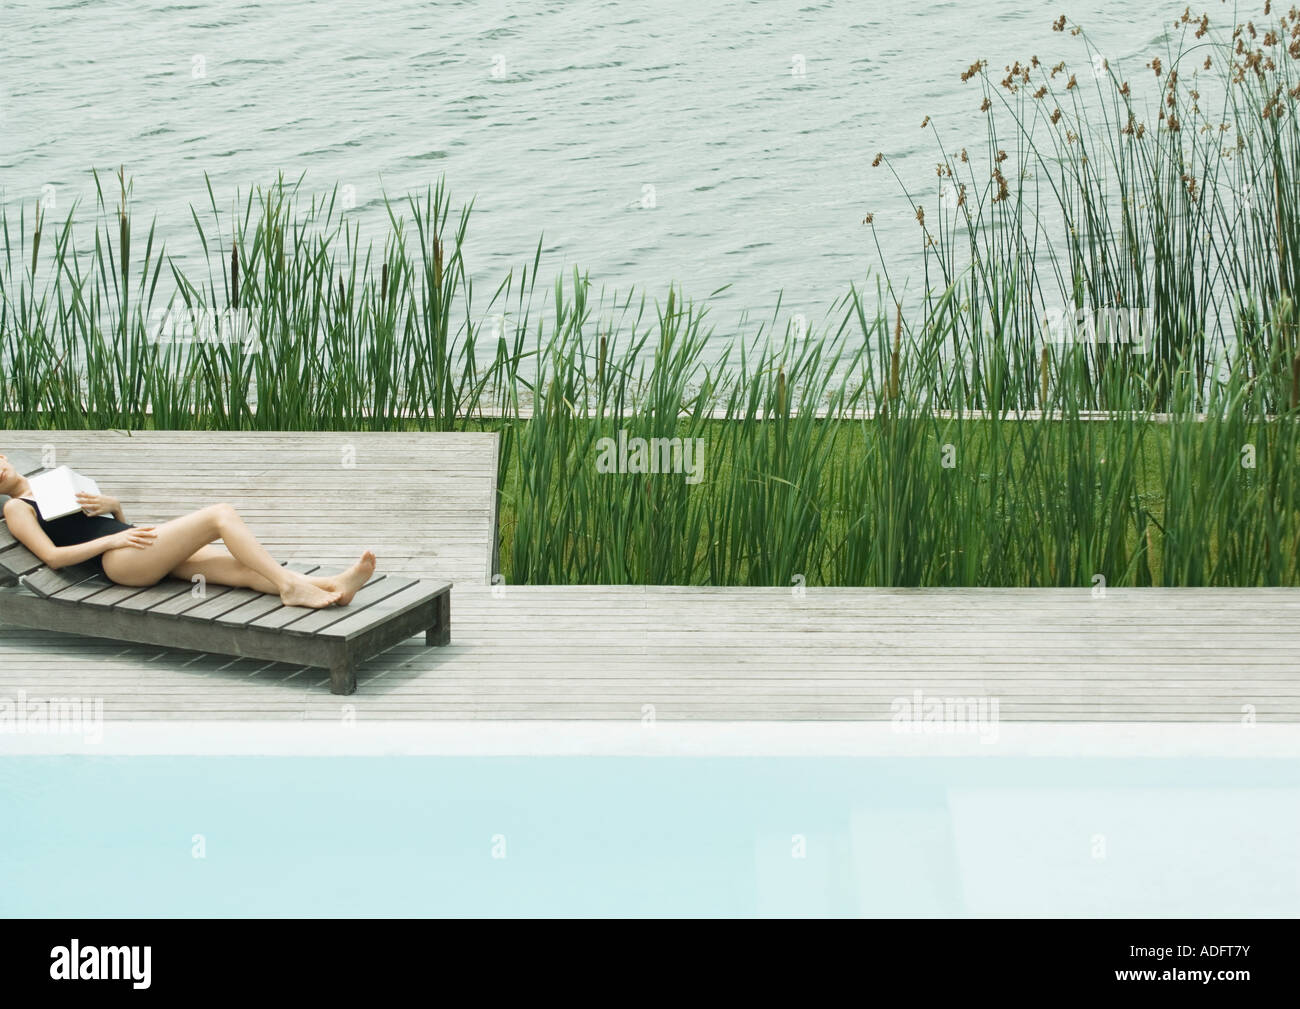 Woman reclining on lounge chair next to lake, sleeping with book on chest - Stock Image